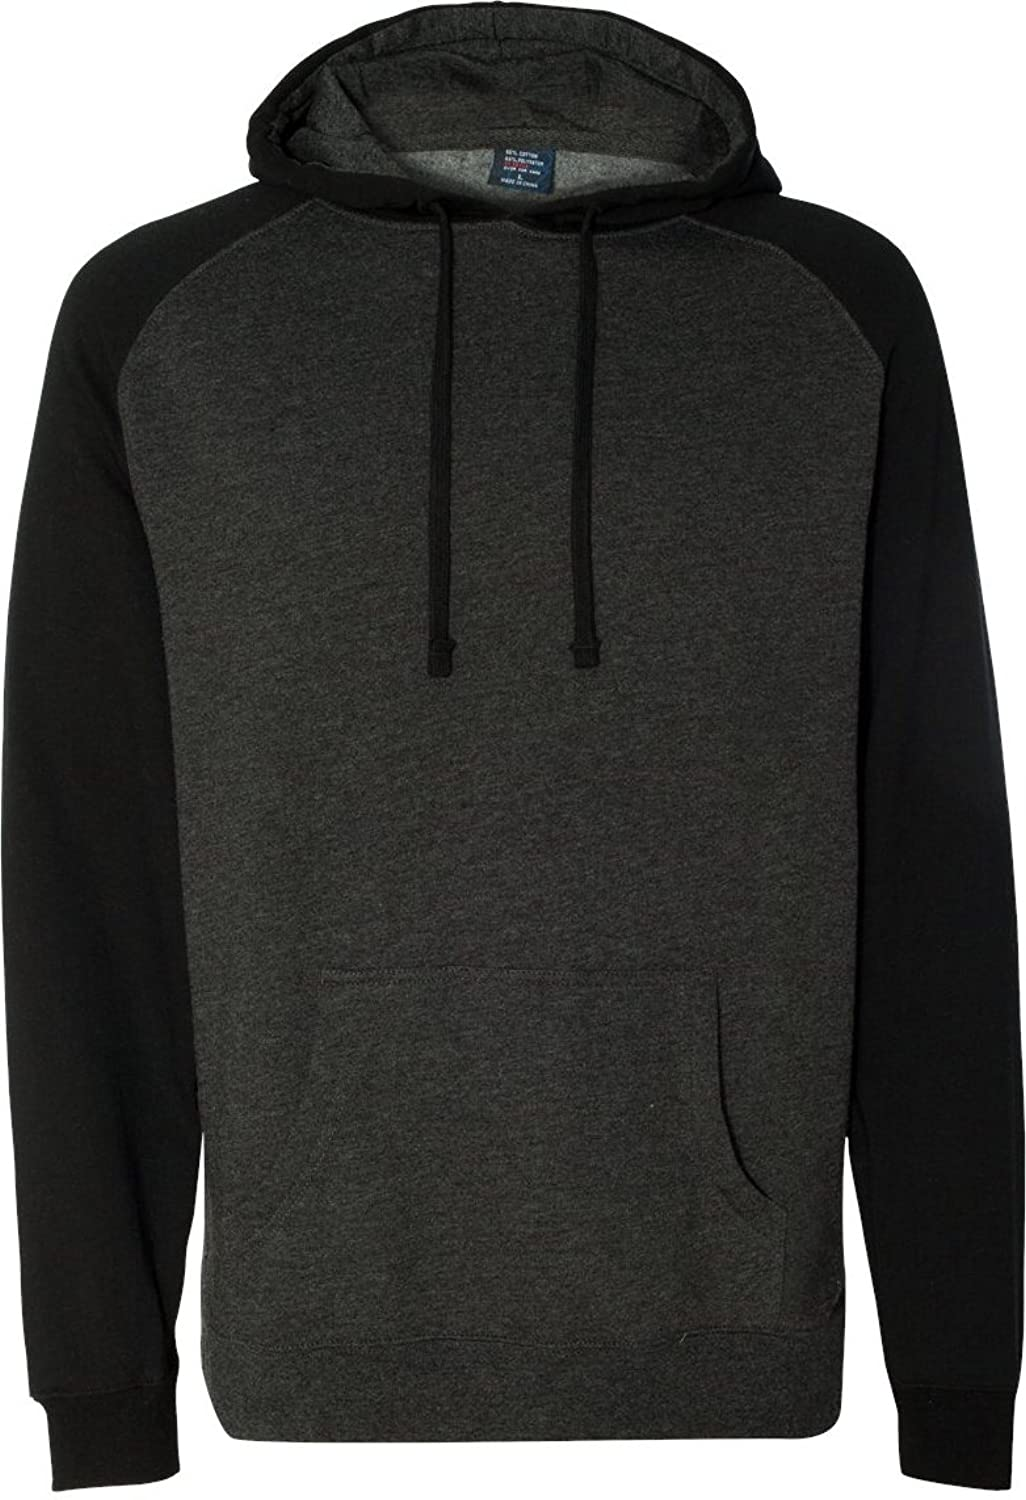 Adult Raglan Hooded Pullover